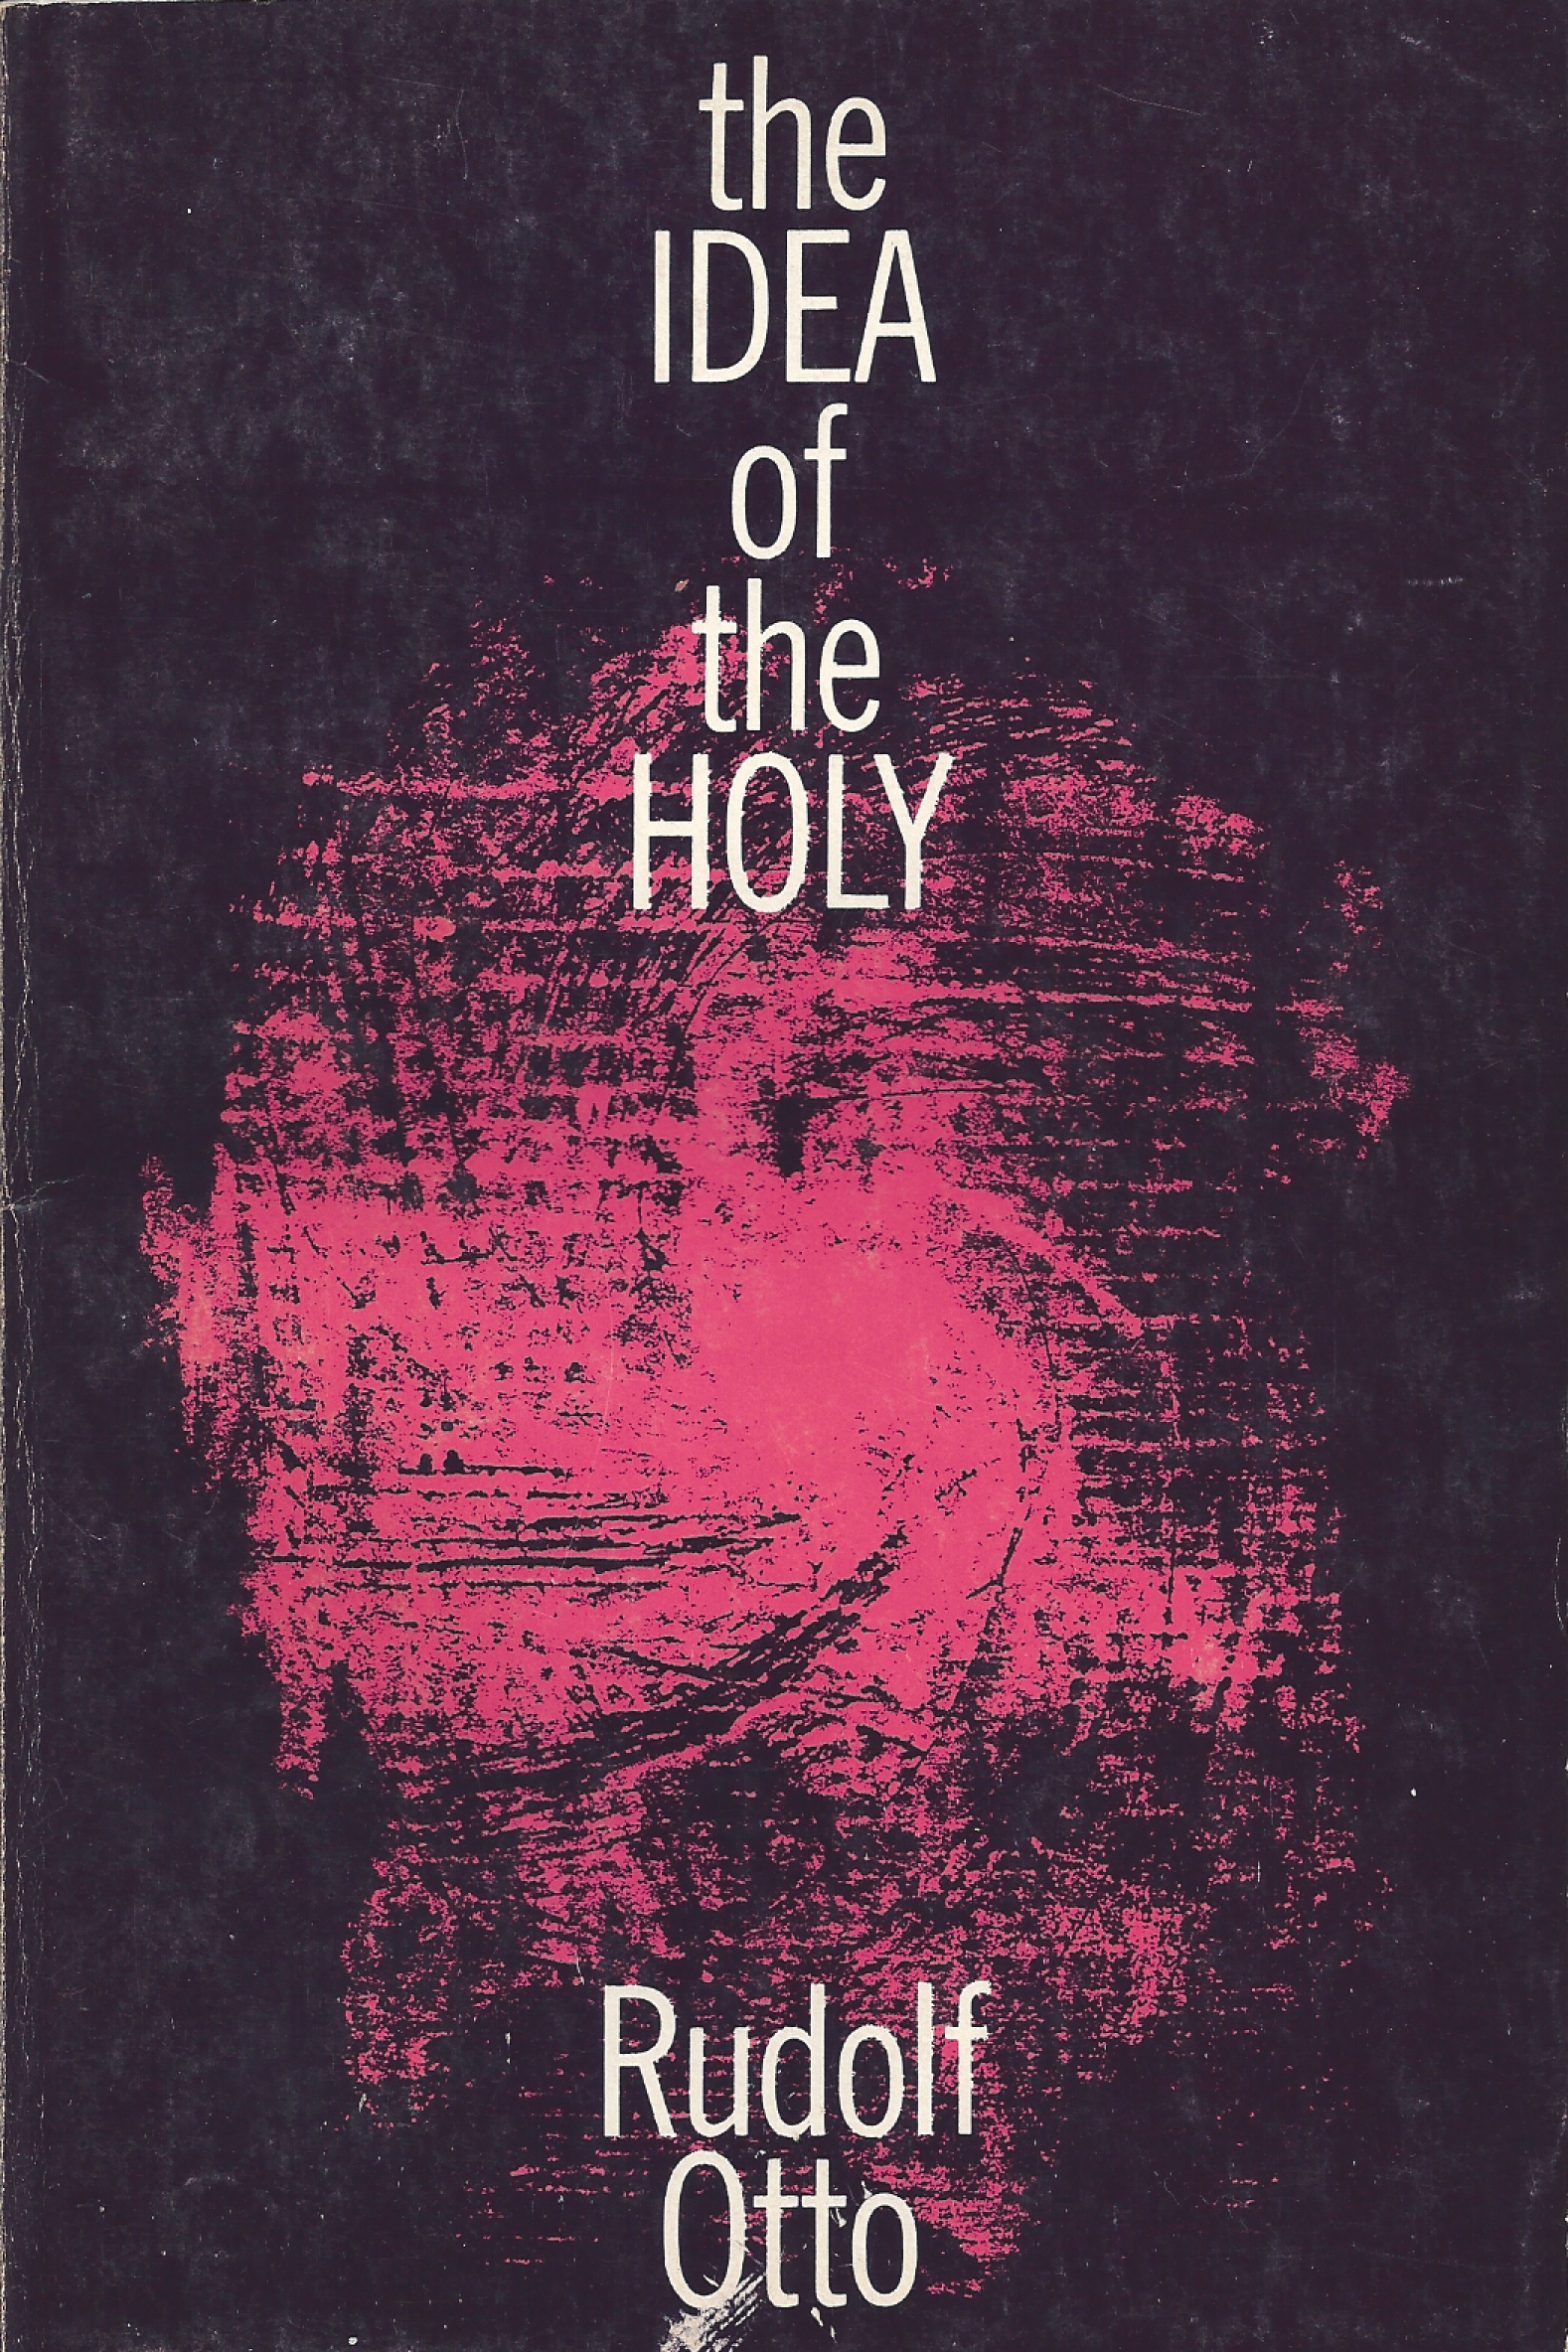 10 Pretty Rudolf Otto The Idea Of The Holy rudolf otto the idea of the holy books e2978b literature pinterest 2020